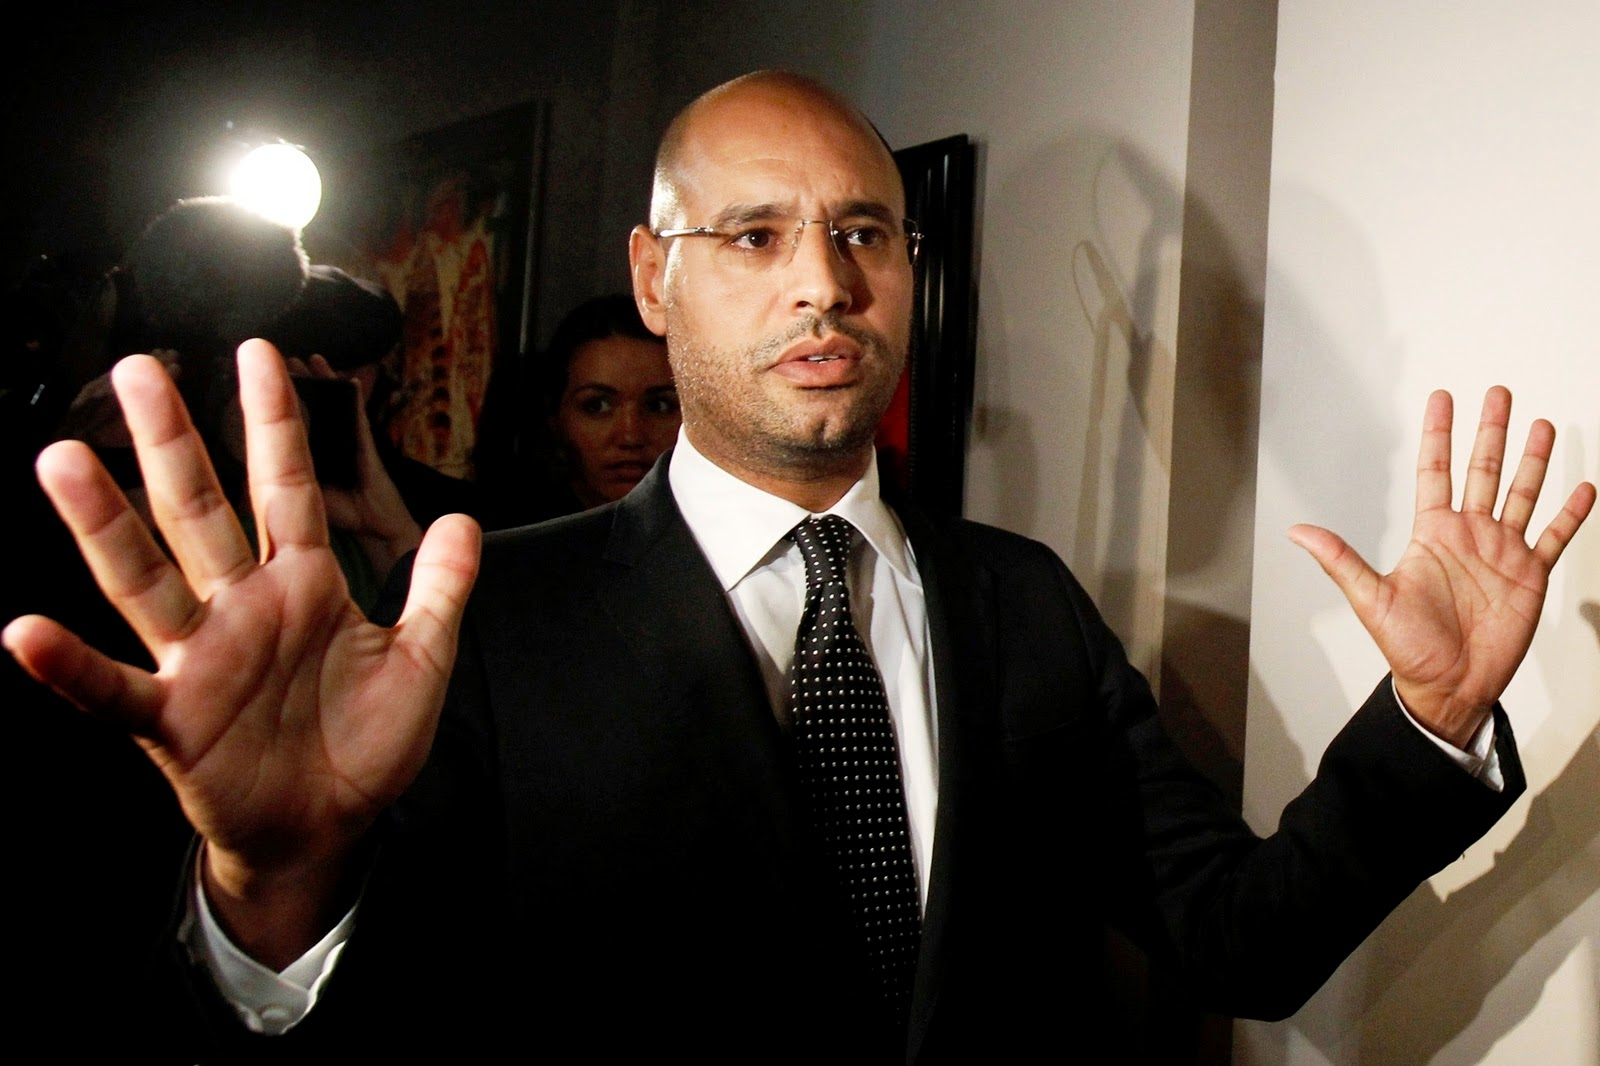 SAIF AL-ISLAM GADDAFI - Into the hands of the 2nd son of Colonel Gaddafi  Saif+Al-Islam+Gaddafi